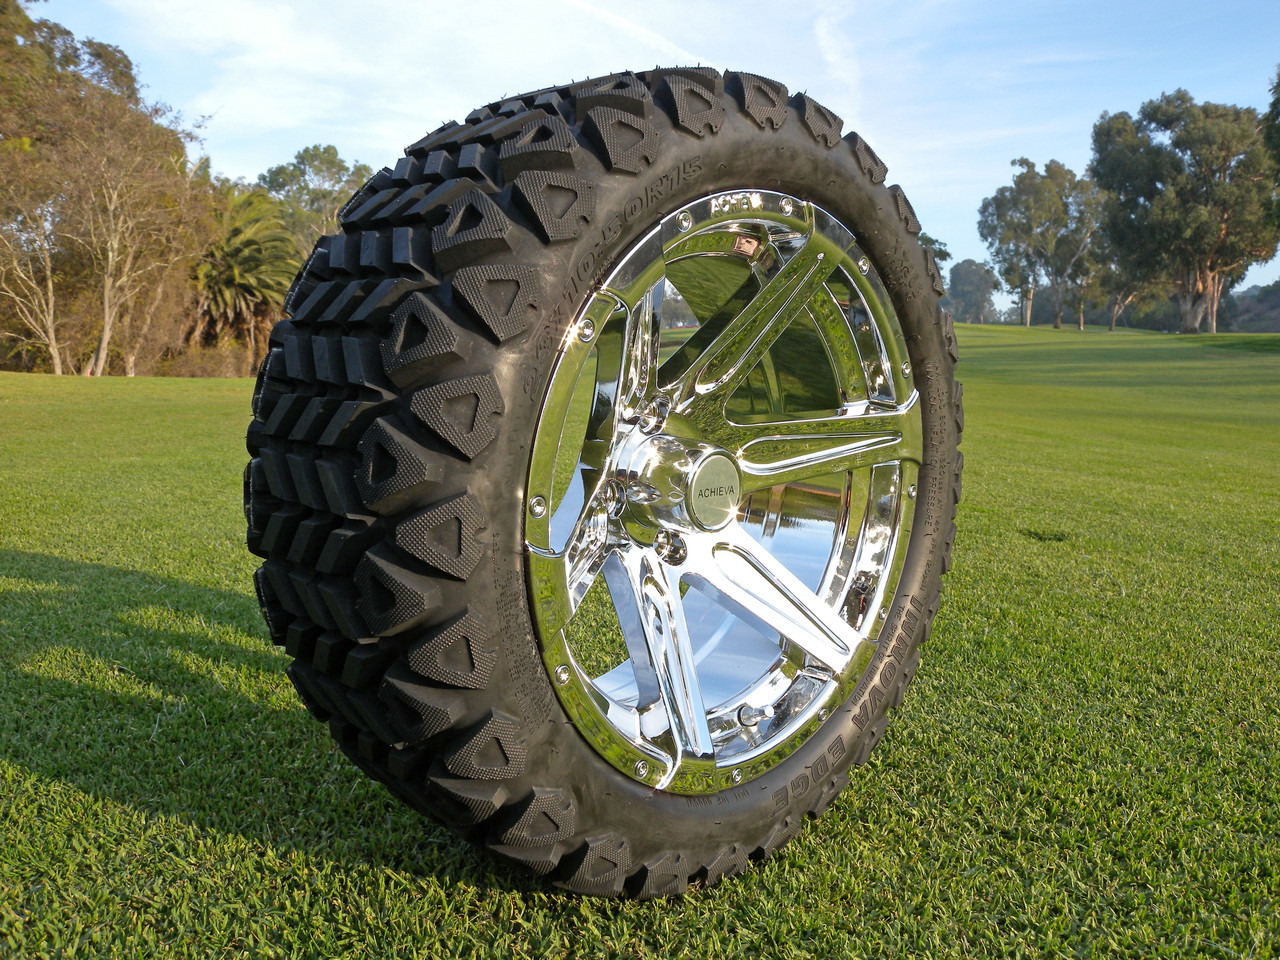 15 inch Innova Edge lifted golf car tire 23x10.5R15 and AR618 chrome Golf Cart Tire Width on golf cart tire tread, golf cart tire pressure, golf cart tire sizes, golf cart tire outlet,